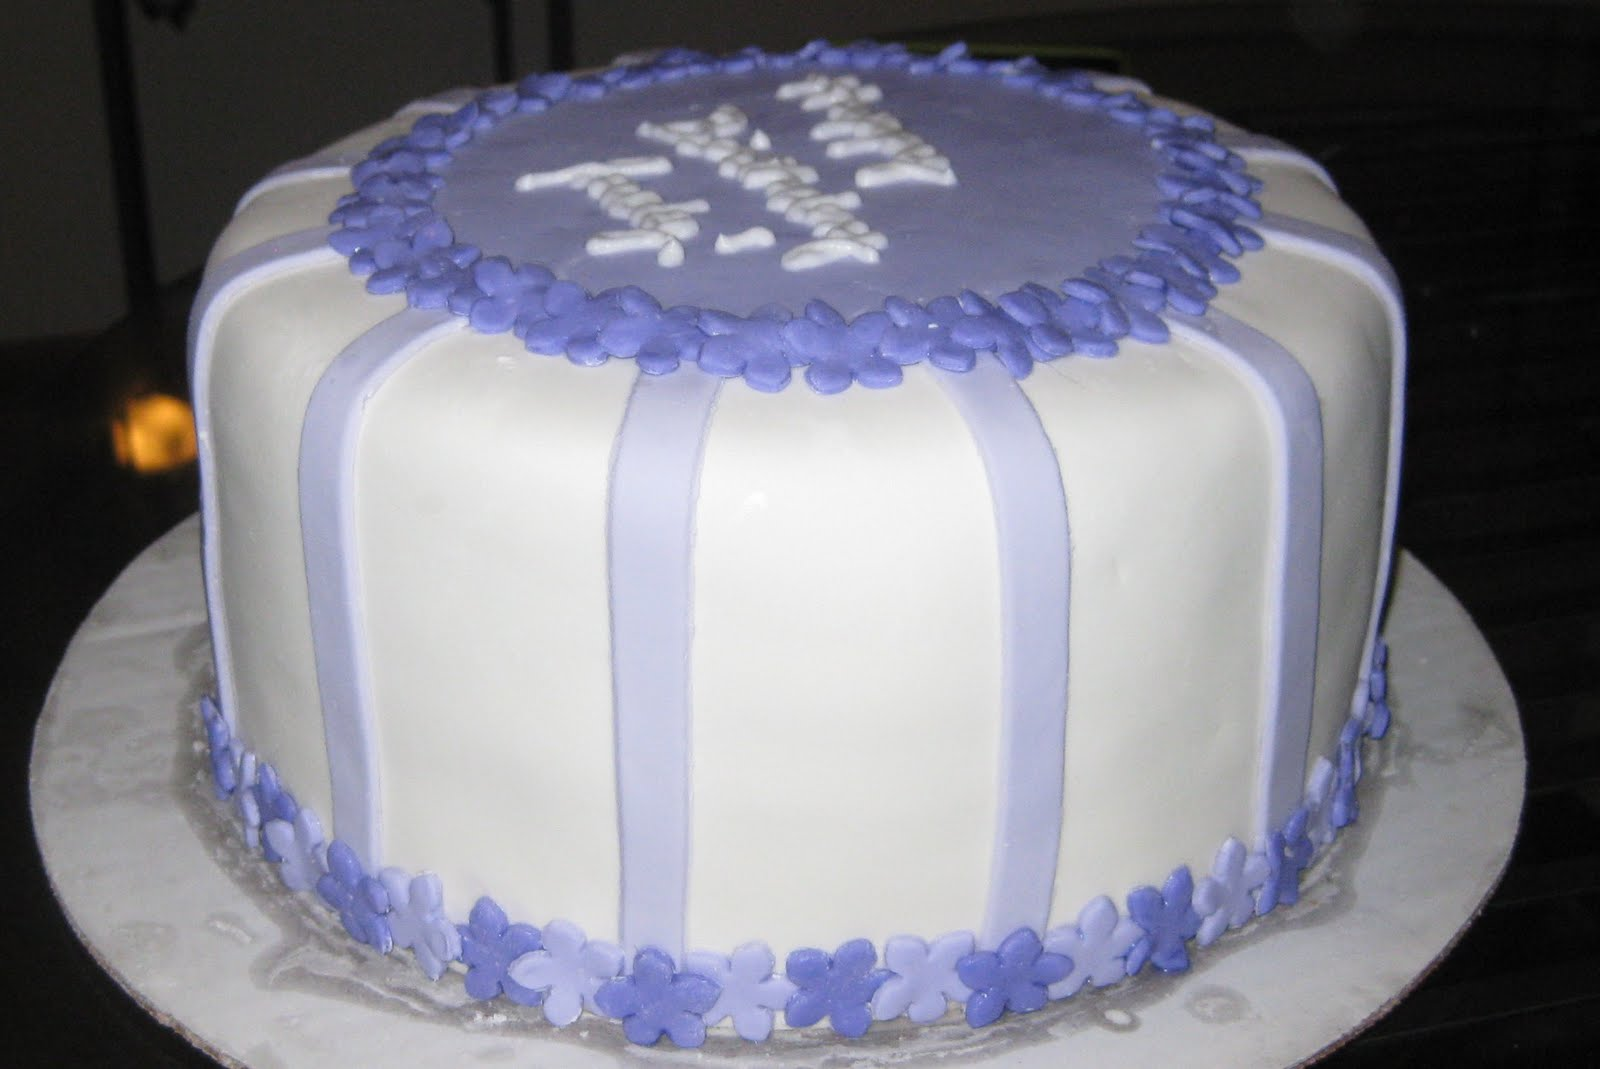 Cake Decorating Wichita Ks